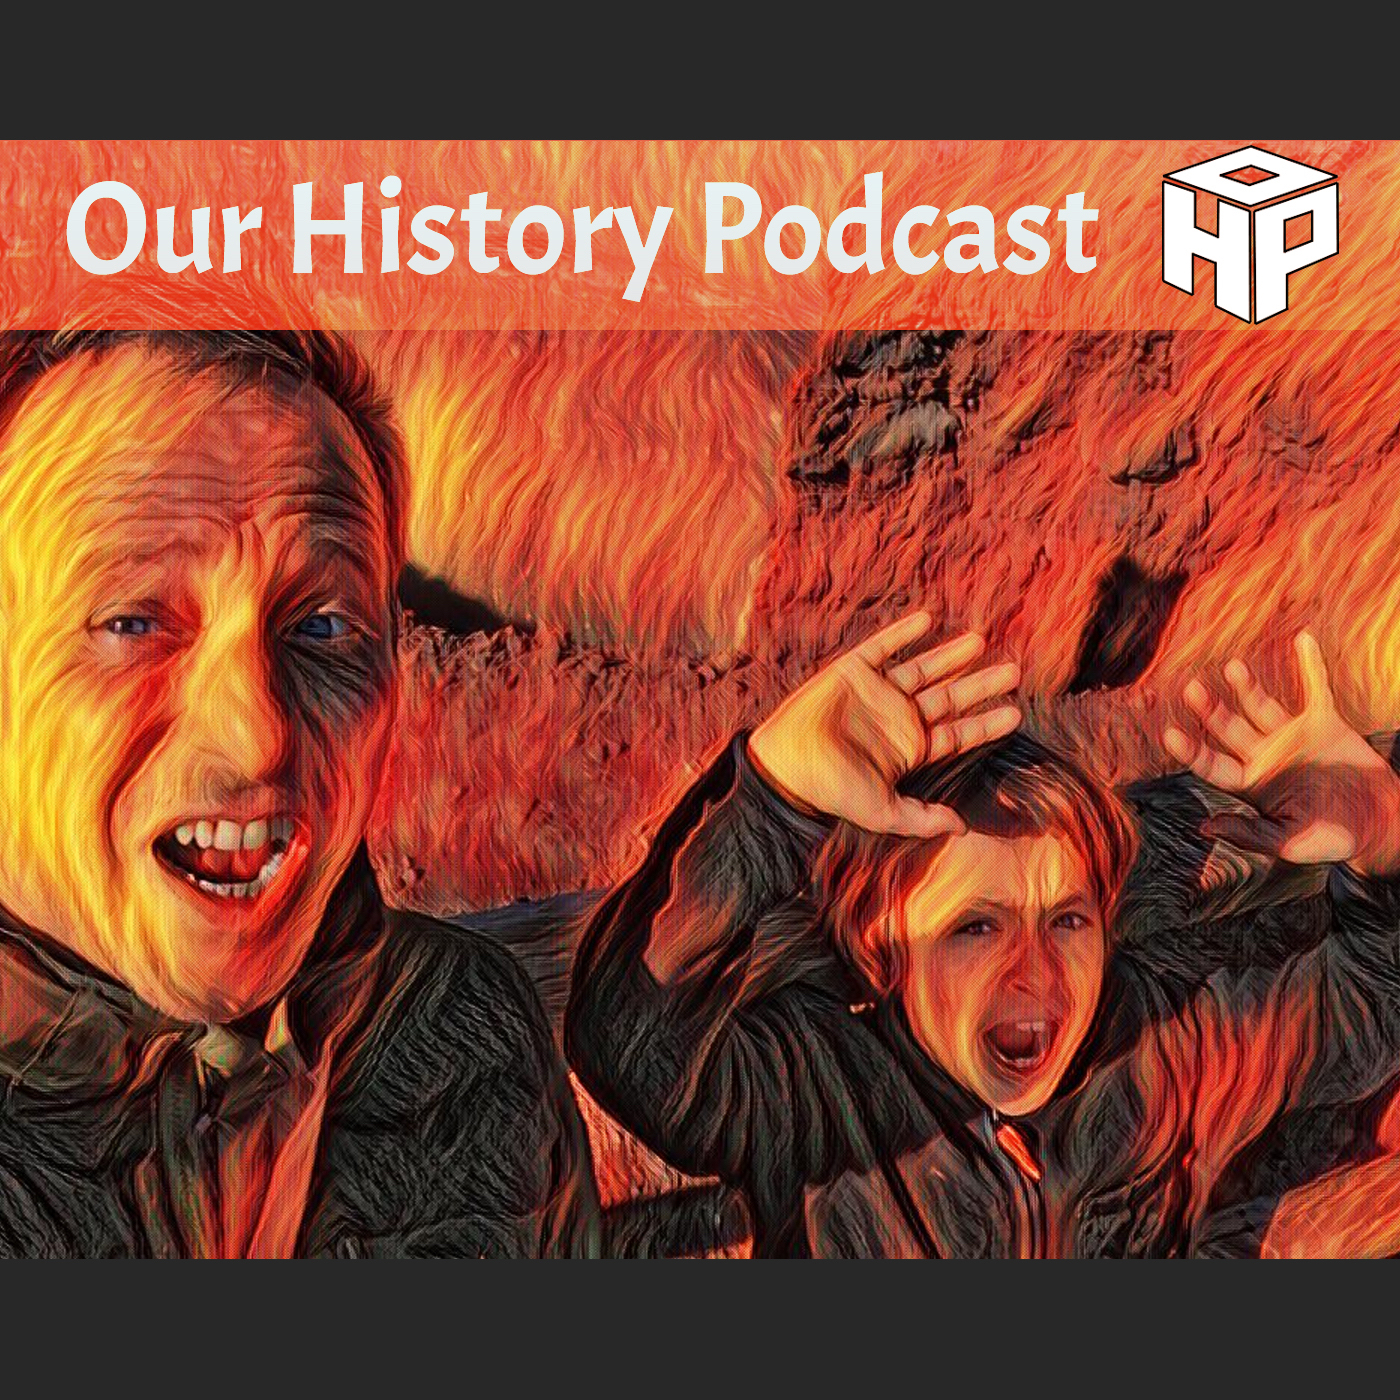 Our History Podcast